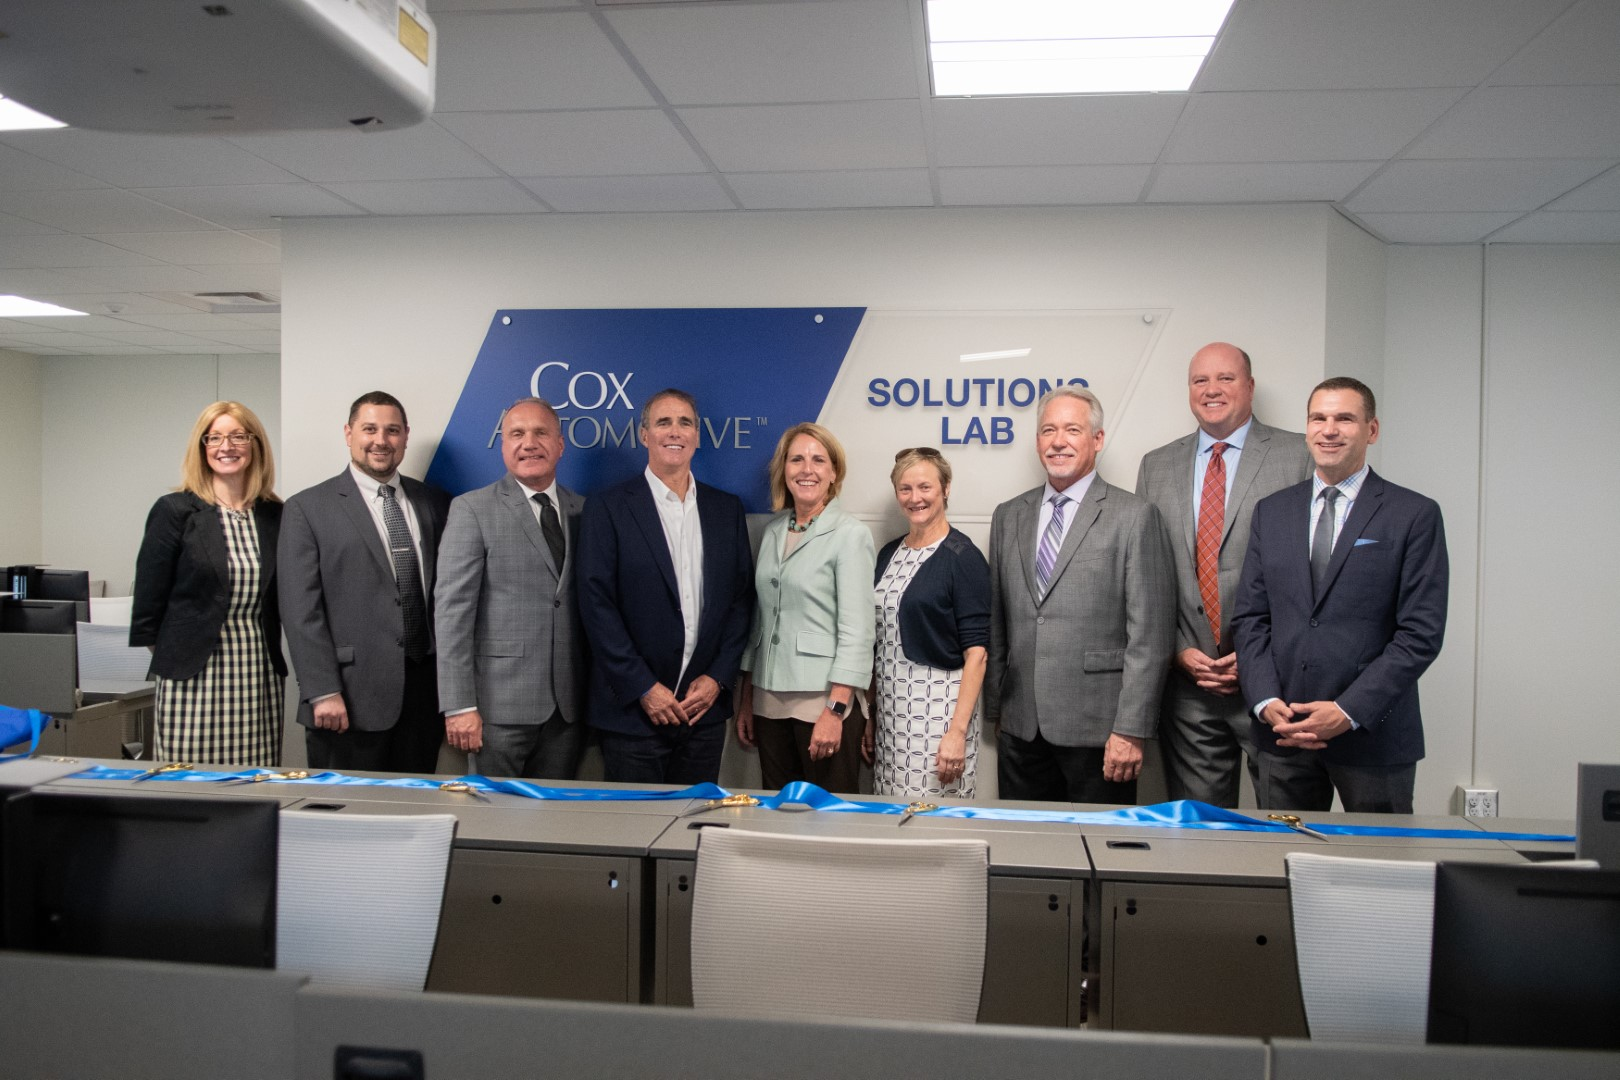 Cox Automotive Executive Vice President and vAuto Founder Dale Pollak (fourth from left) and EVP & Chief People Officer Janet Barnard (fifth from left) were on campus to welcome students to the new Cox Automotive Solutions Lab.